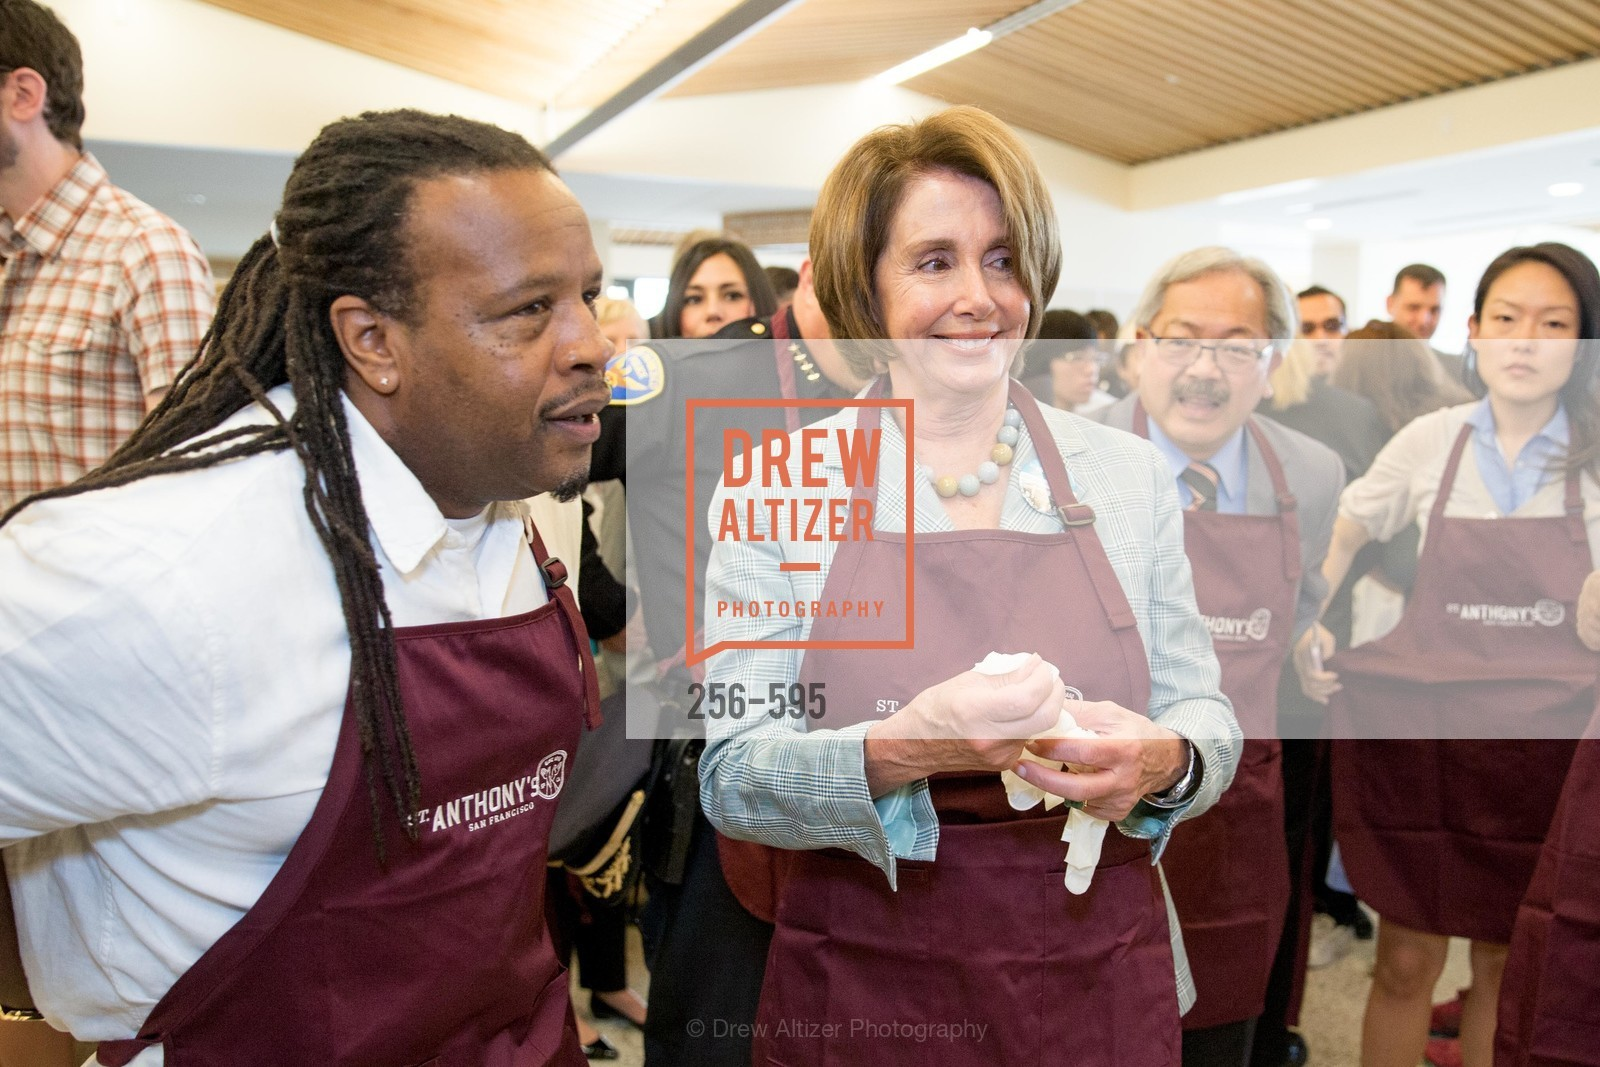 Tyrone Hopper, The Honorable Nancy Pelosi, ST. ANTHONY'S Dining Room Ribbon Cutting Ceremony, US, October 4th, 2014,Drew Altizer, Drew Altizer Photography, full-service agency, private events, San Francisco photographer, photographer california